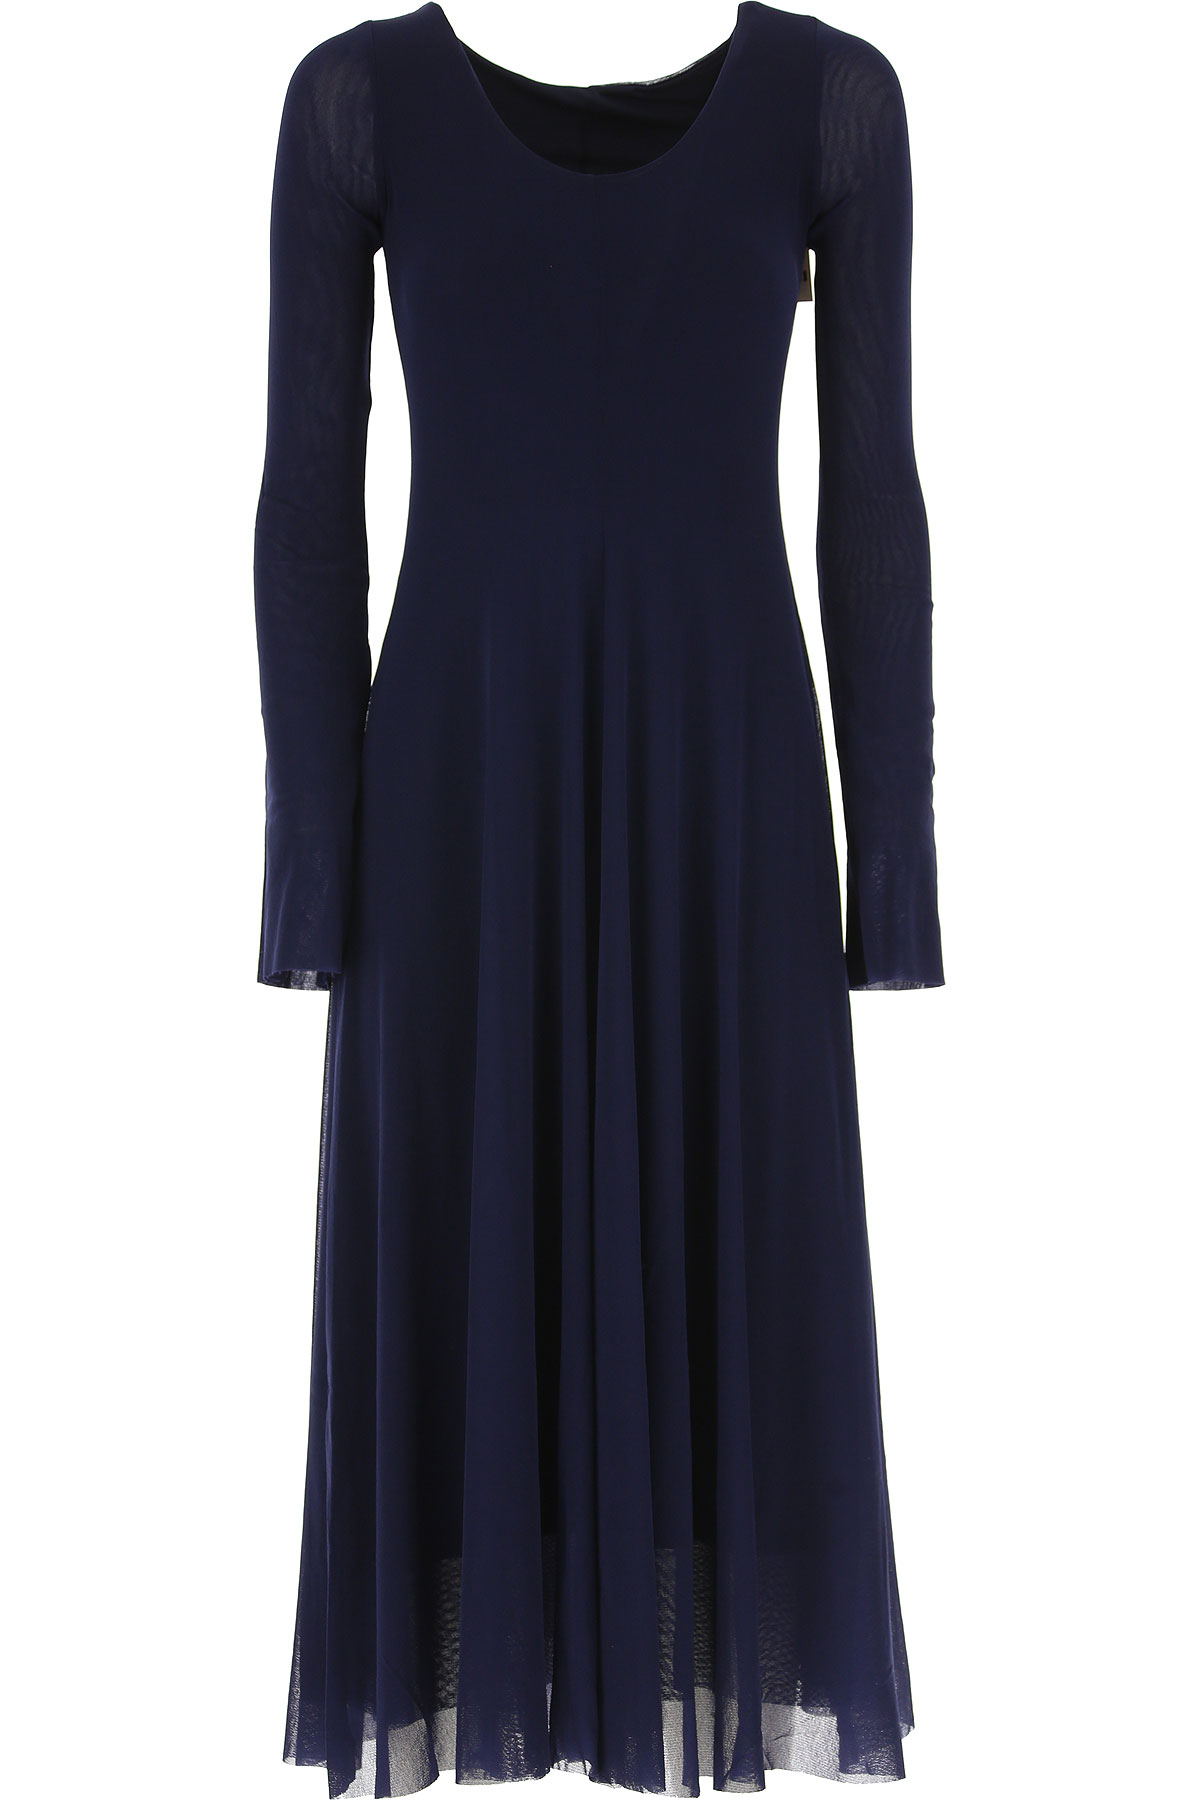 Image of Fuzzi Dress for Women, Evening Cocktail Party, Dark Blue, polyamide, 2017, 10 4 6 8